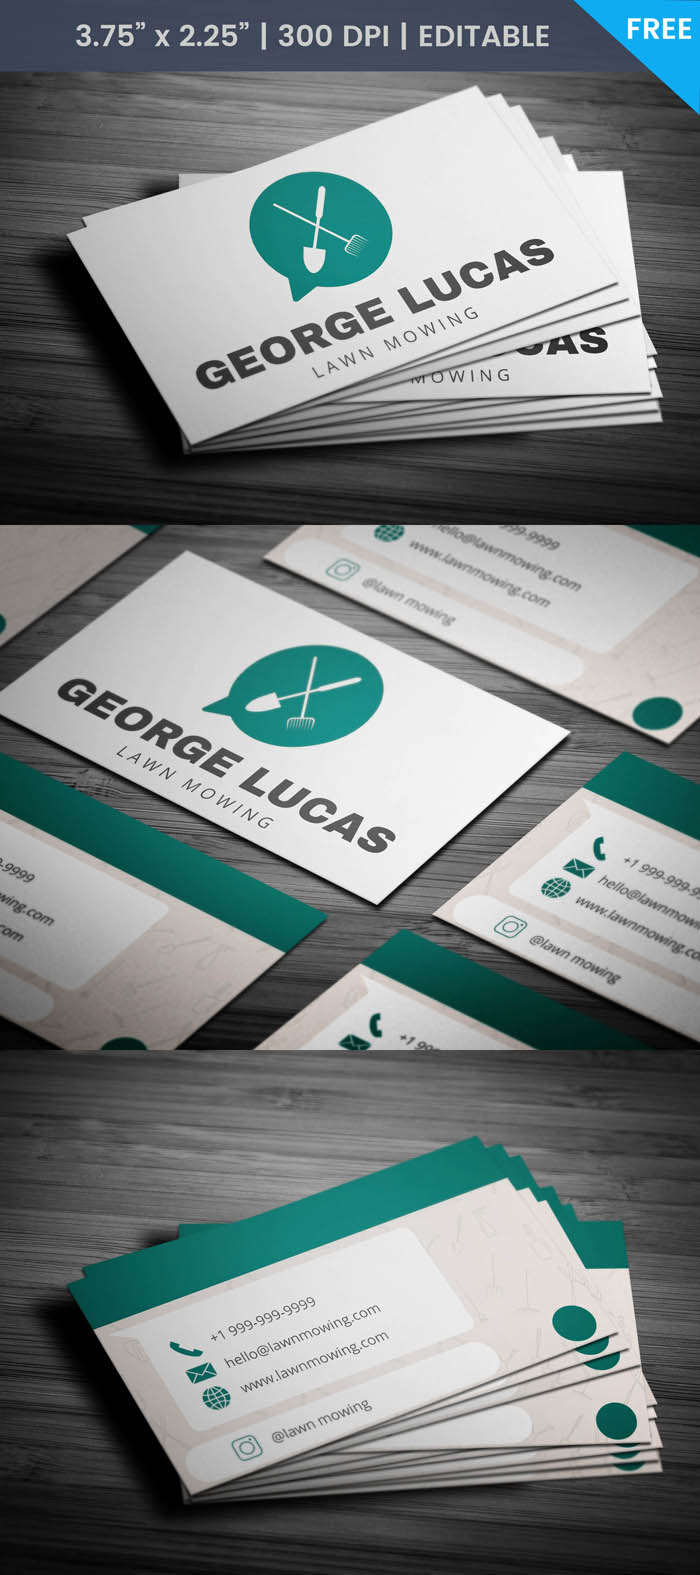 Free Whatsapp Themed Lawn Care Business Card Template